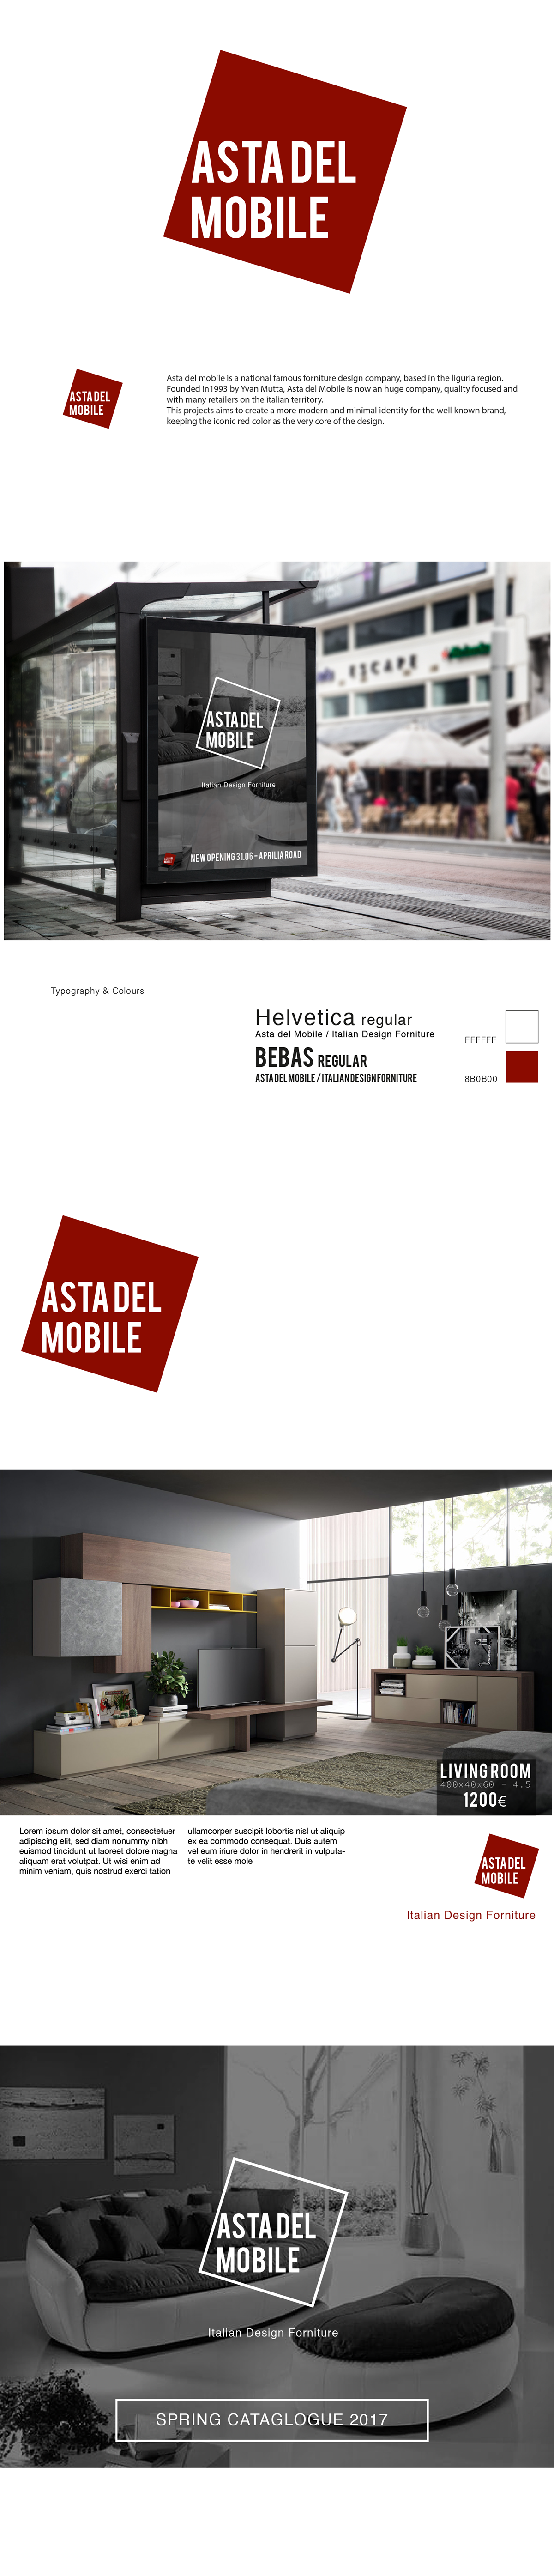 Asta del Mobile - Brand Image on Pantone Canvas Gallery